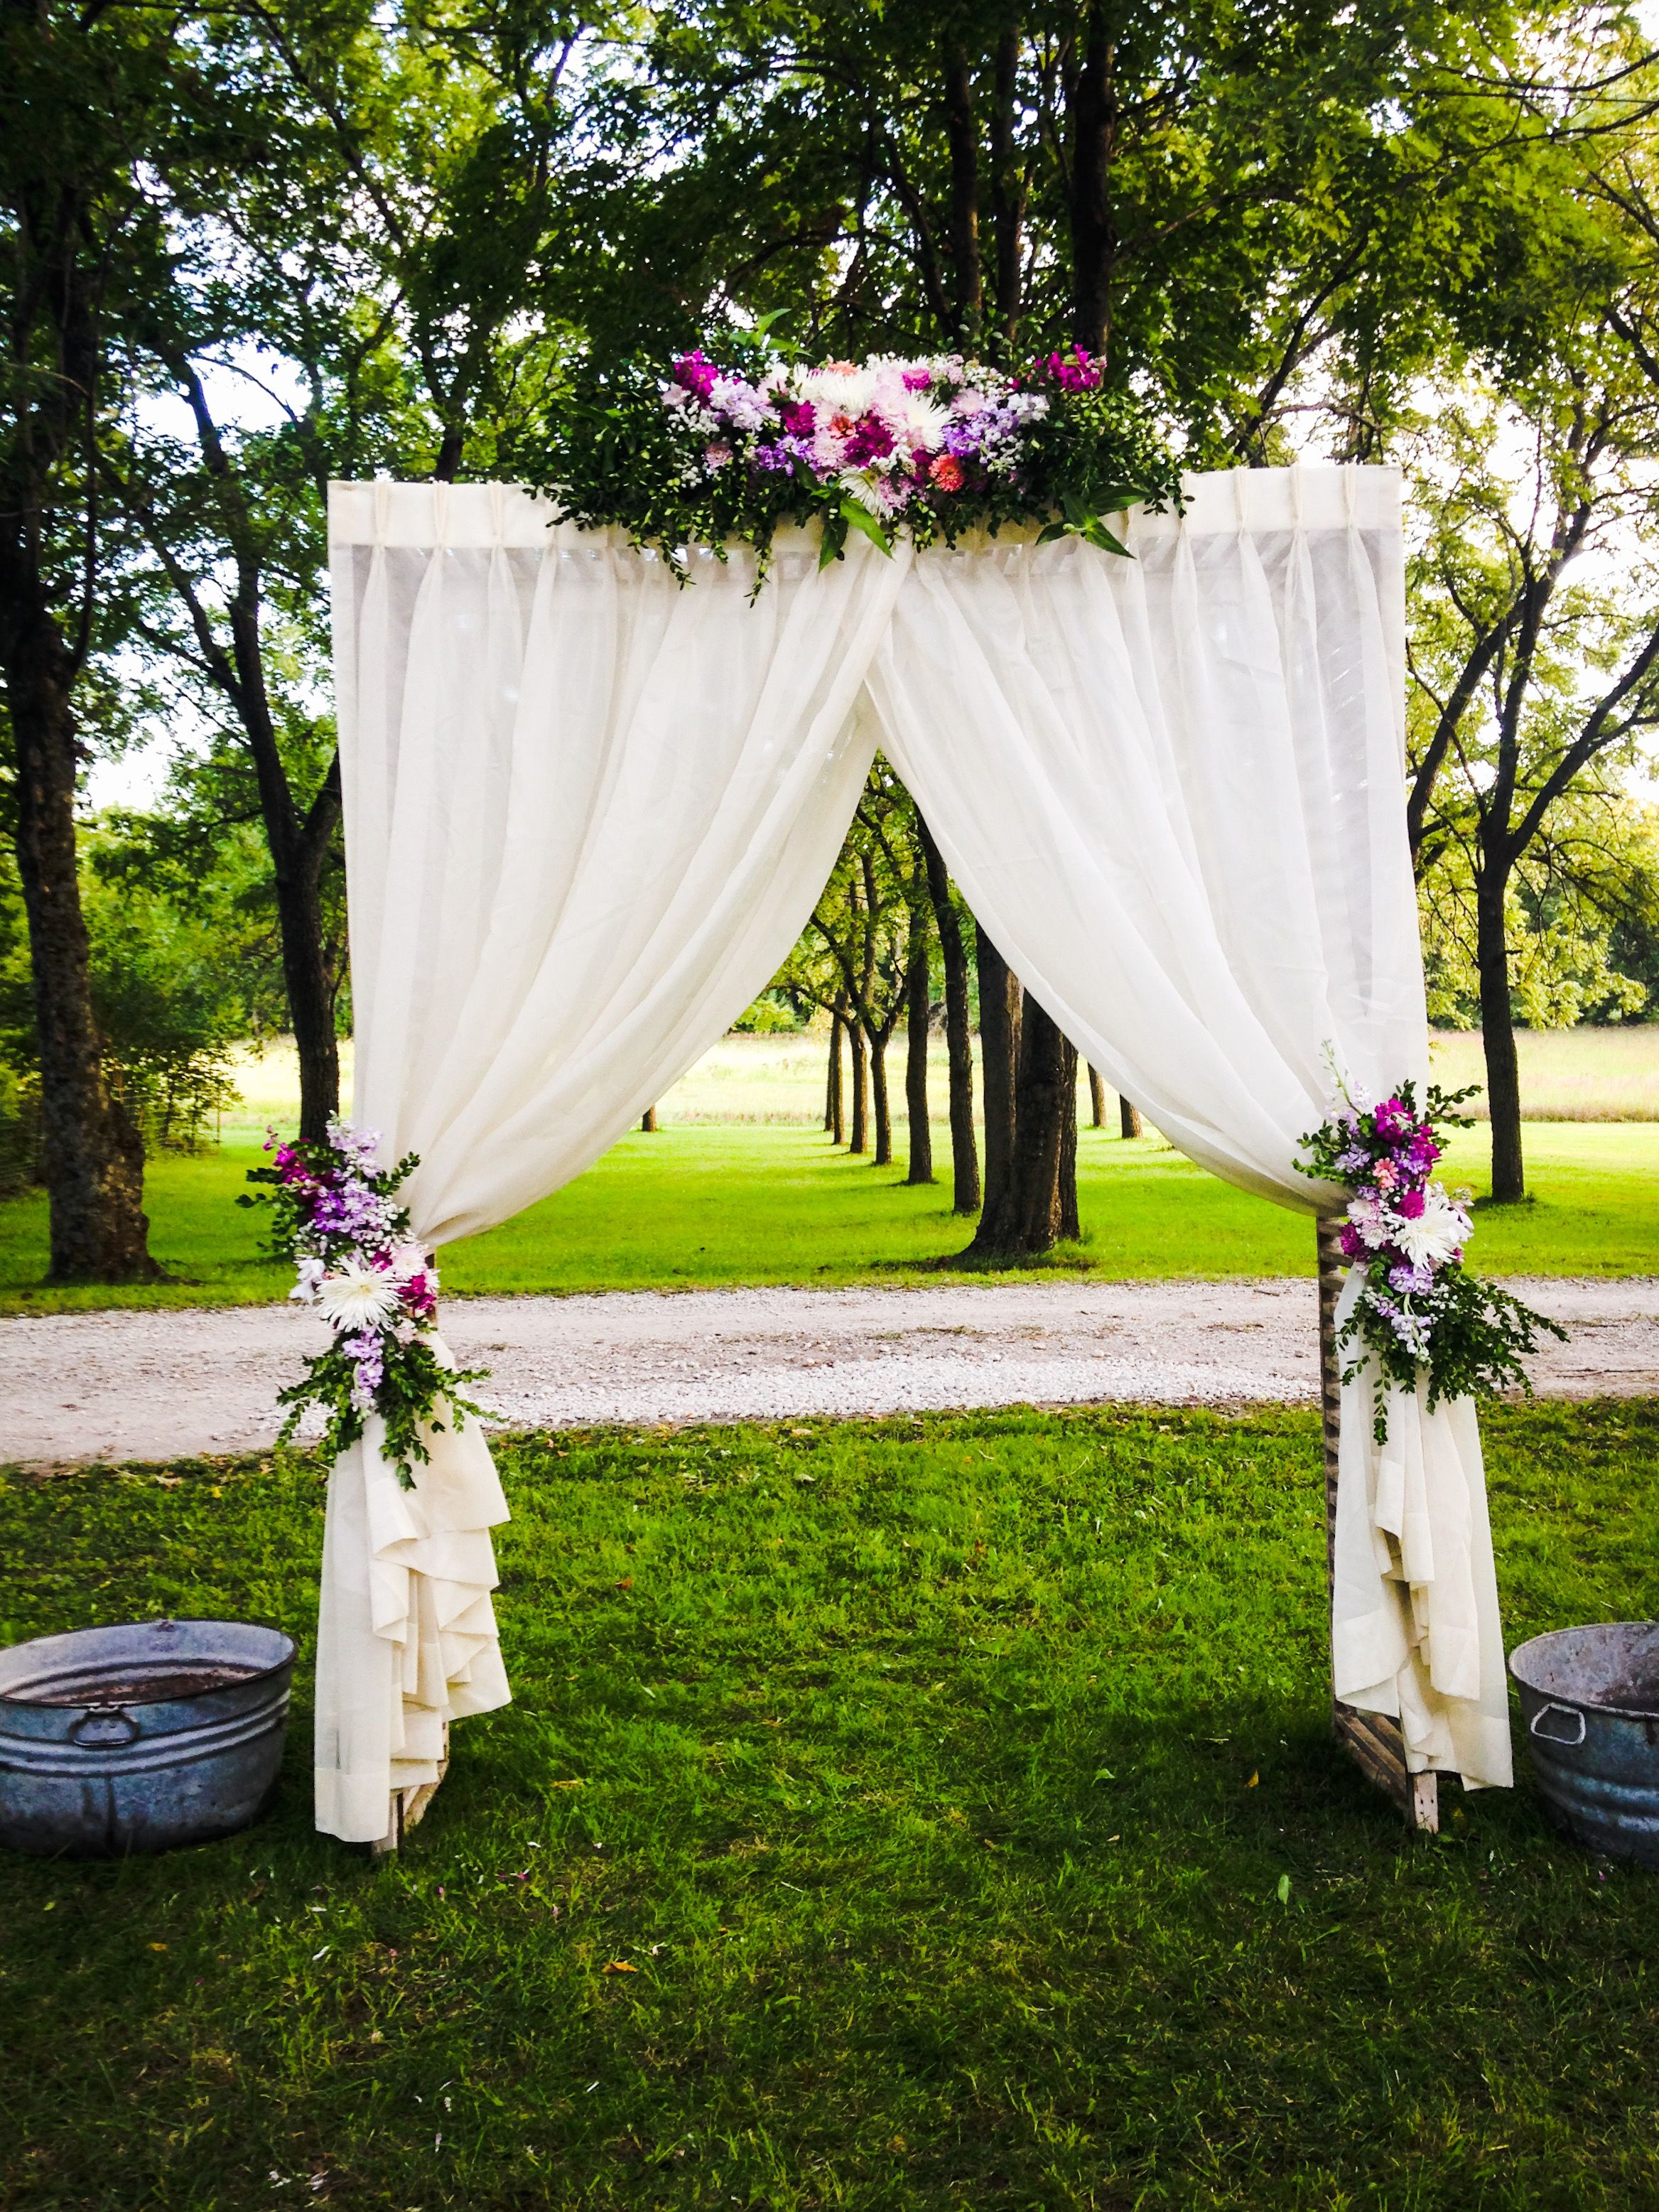 Floral Chuppah Arch Flower Tied Back Curtains Country